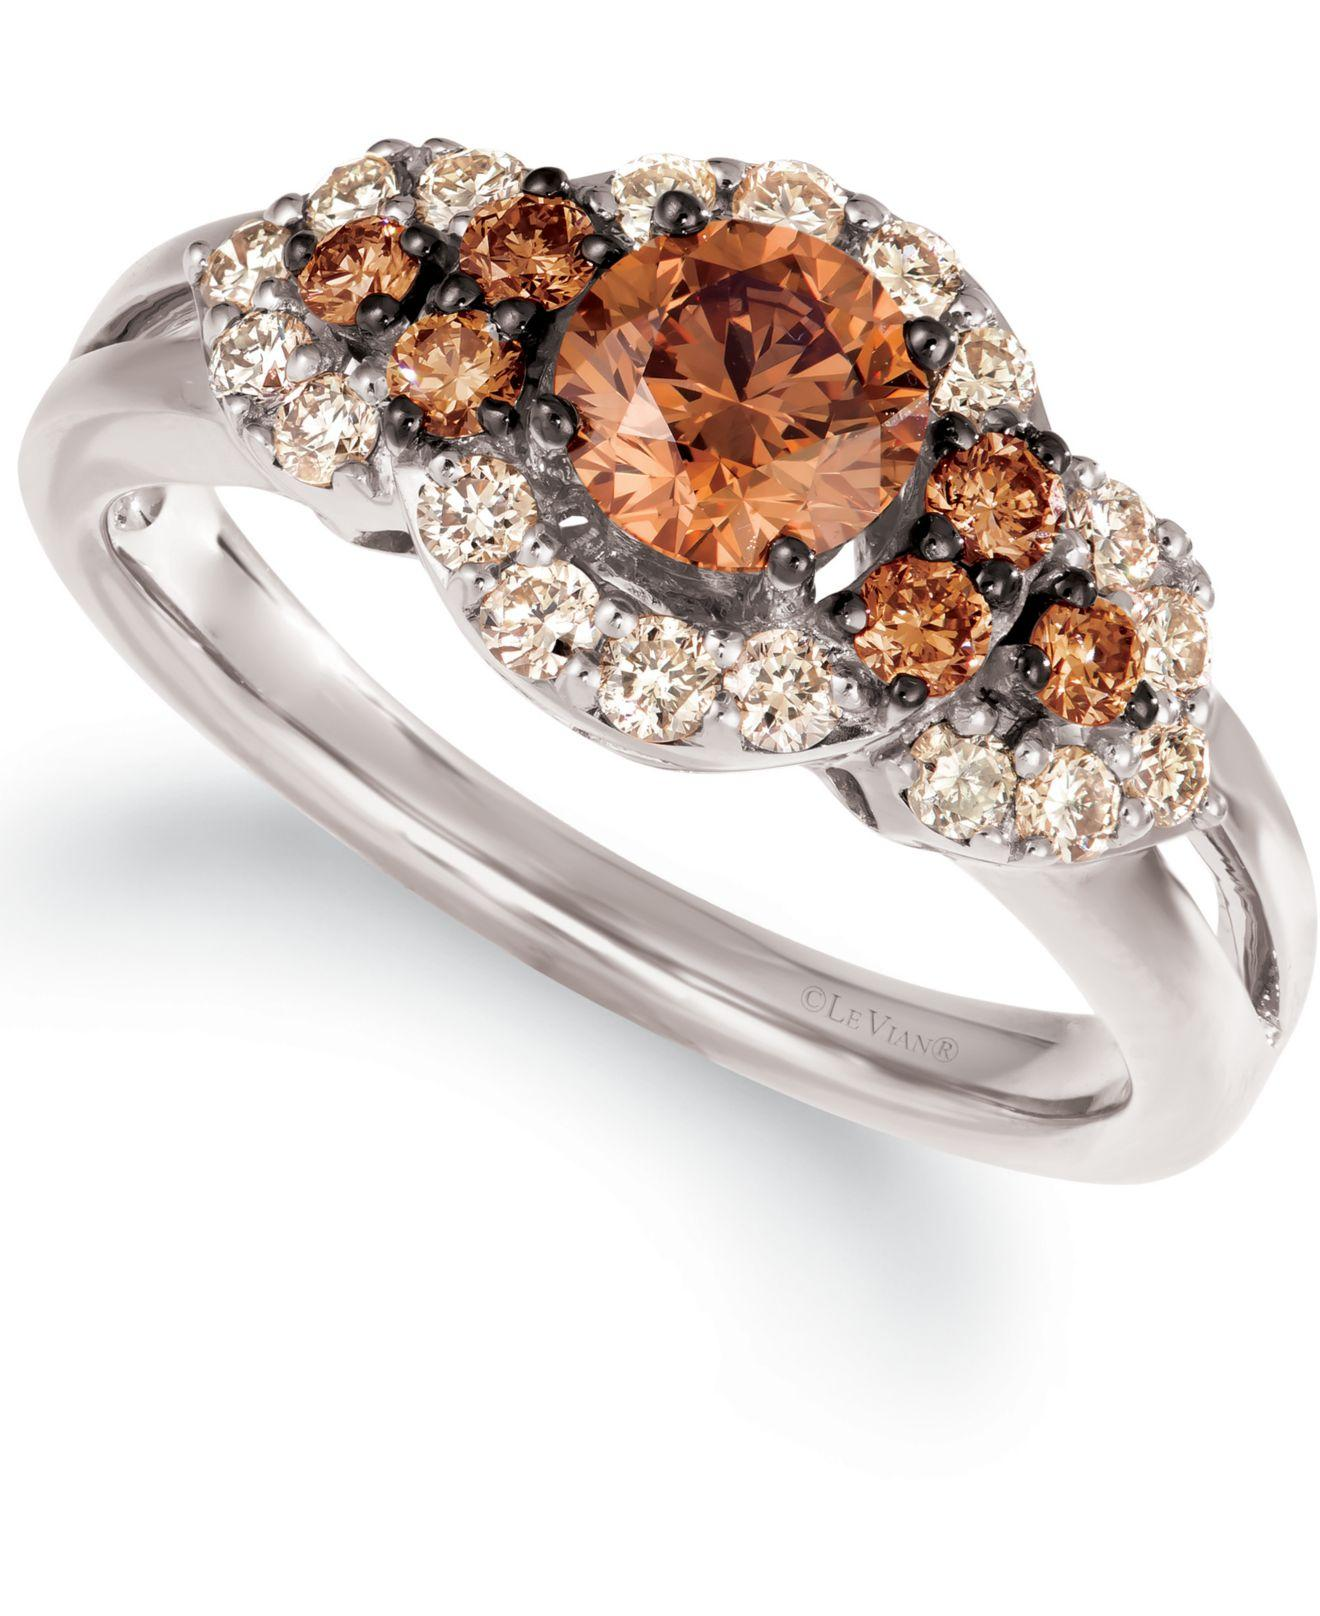 Le Vian Nude Diamond™ Band Ring (7/8 ct. t.w.) in 14k Gold